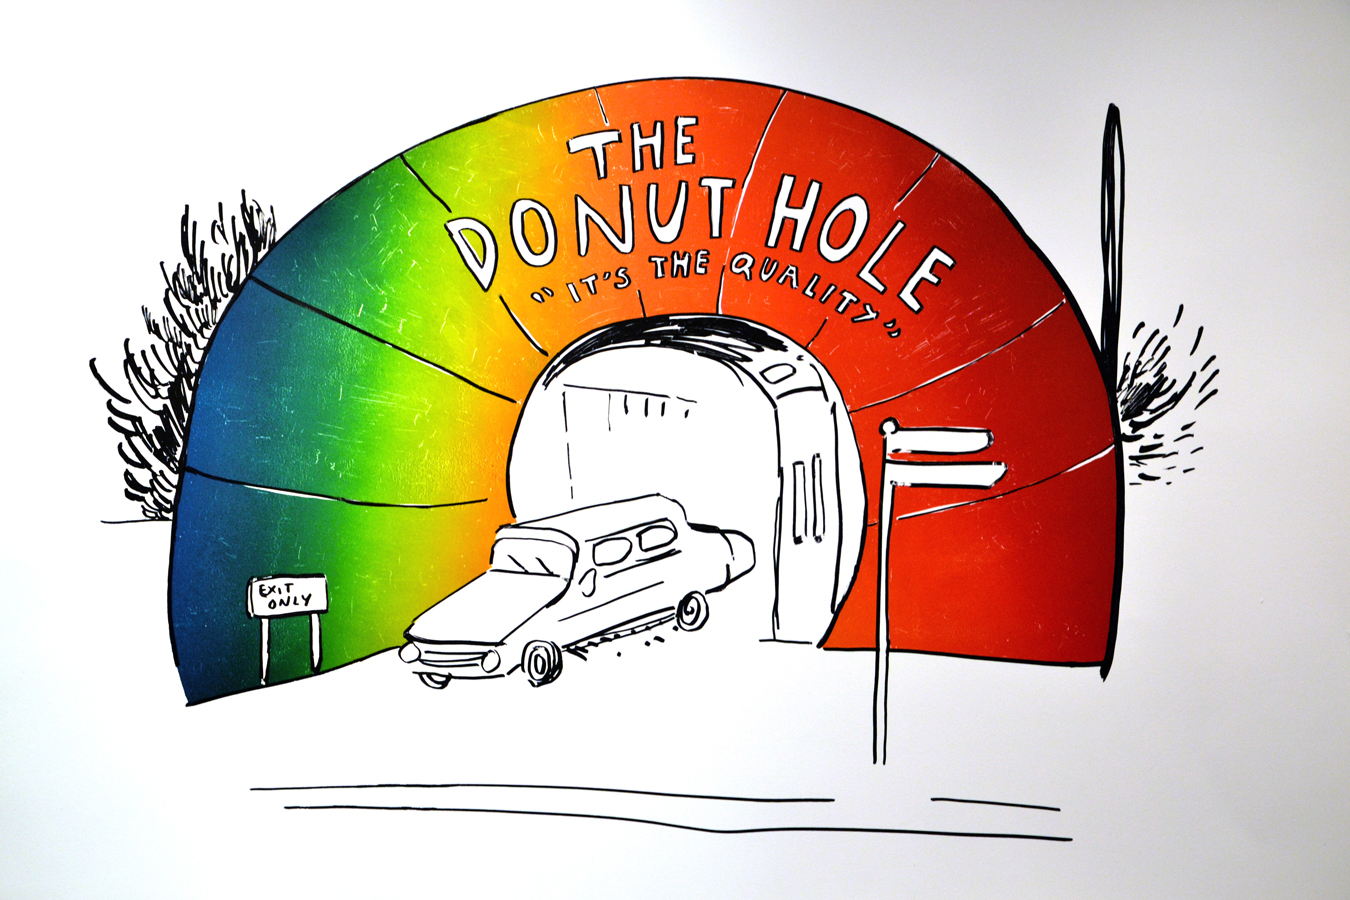 the donut hole72.jpg